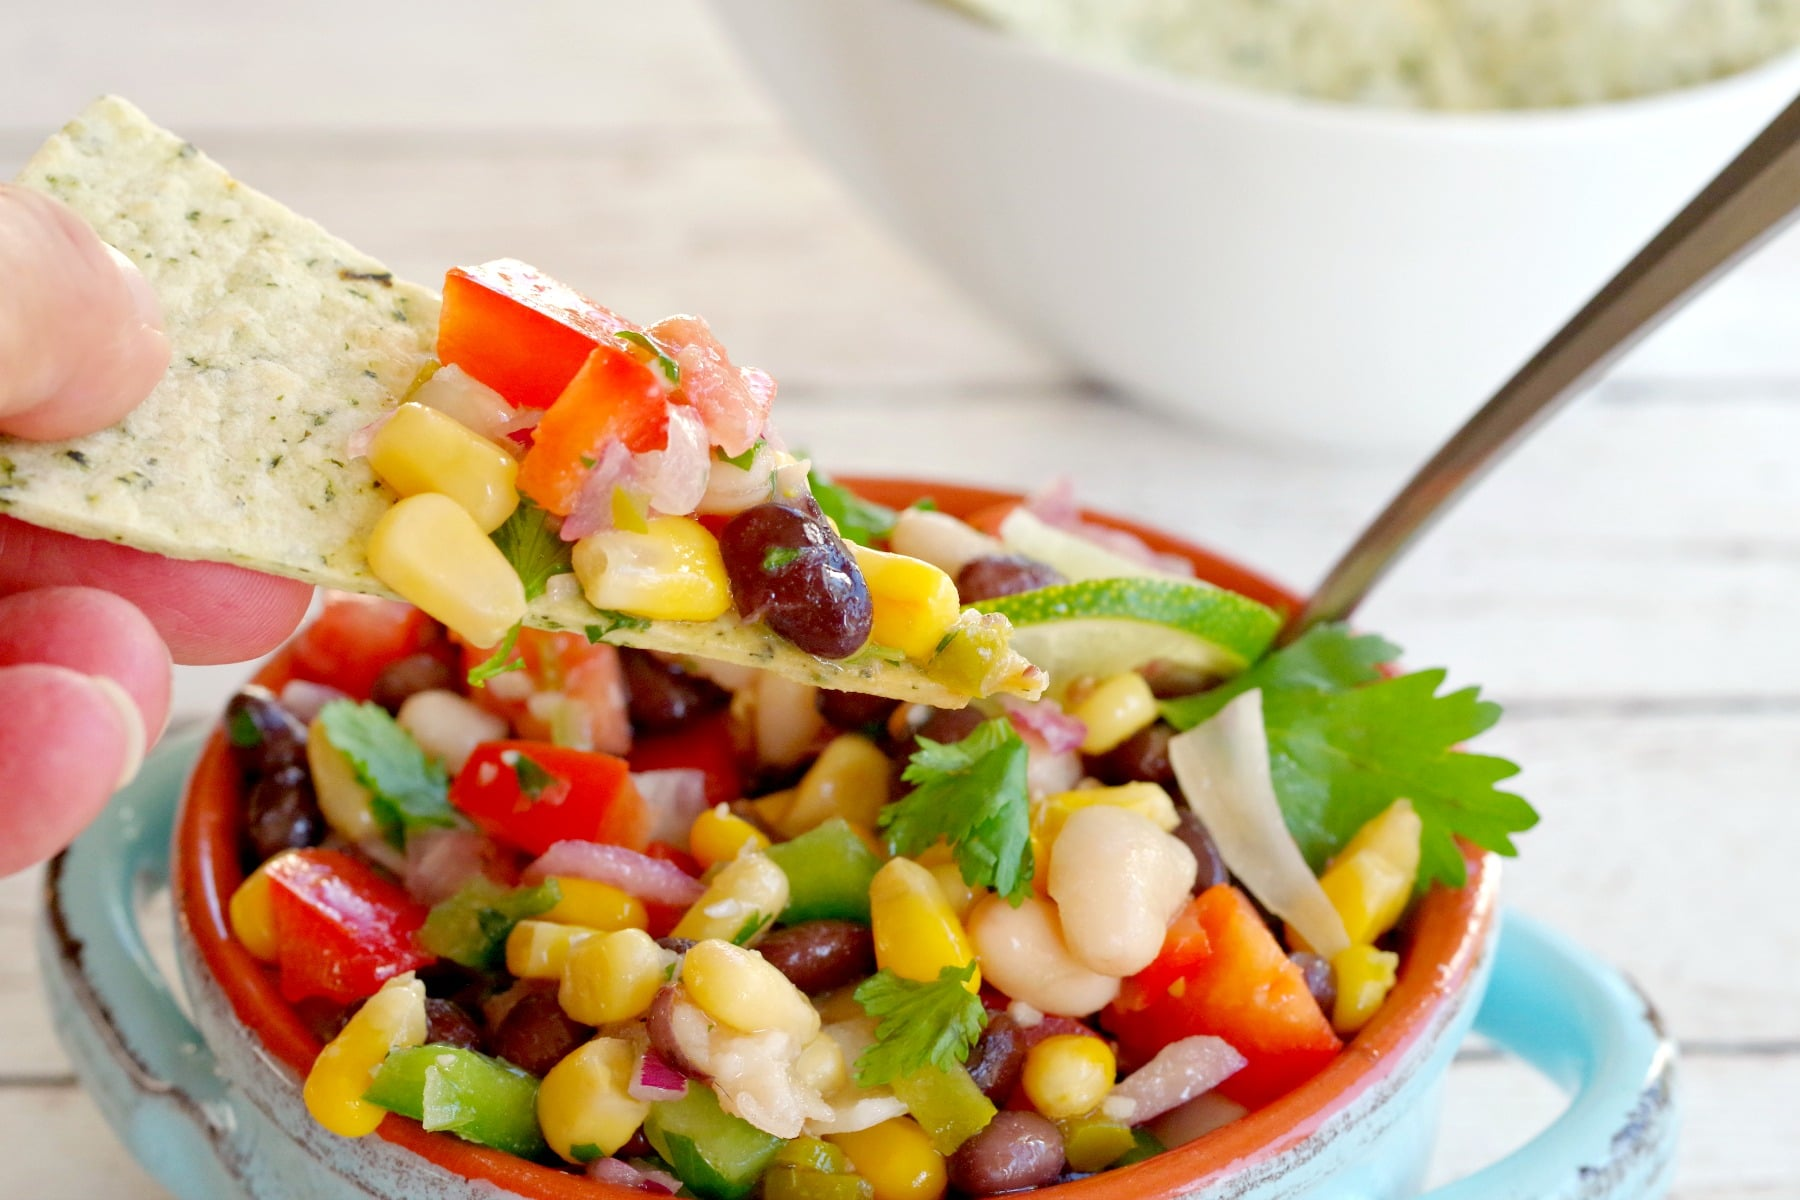 Cowboy Caviar Dip in a bowl with a chip being dipped in